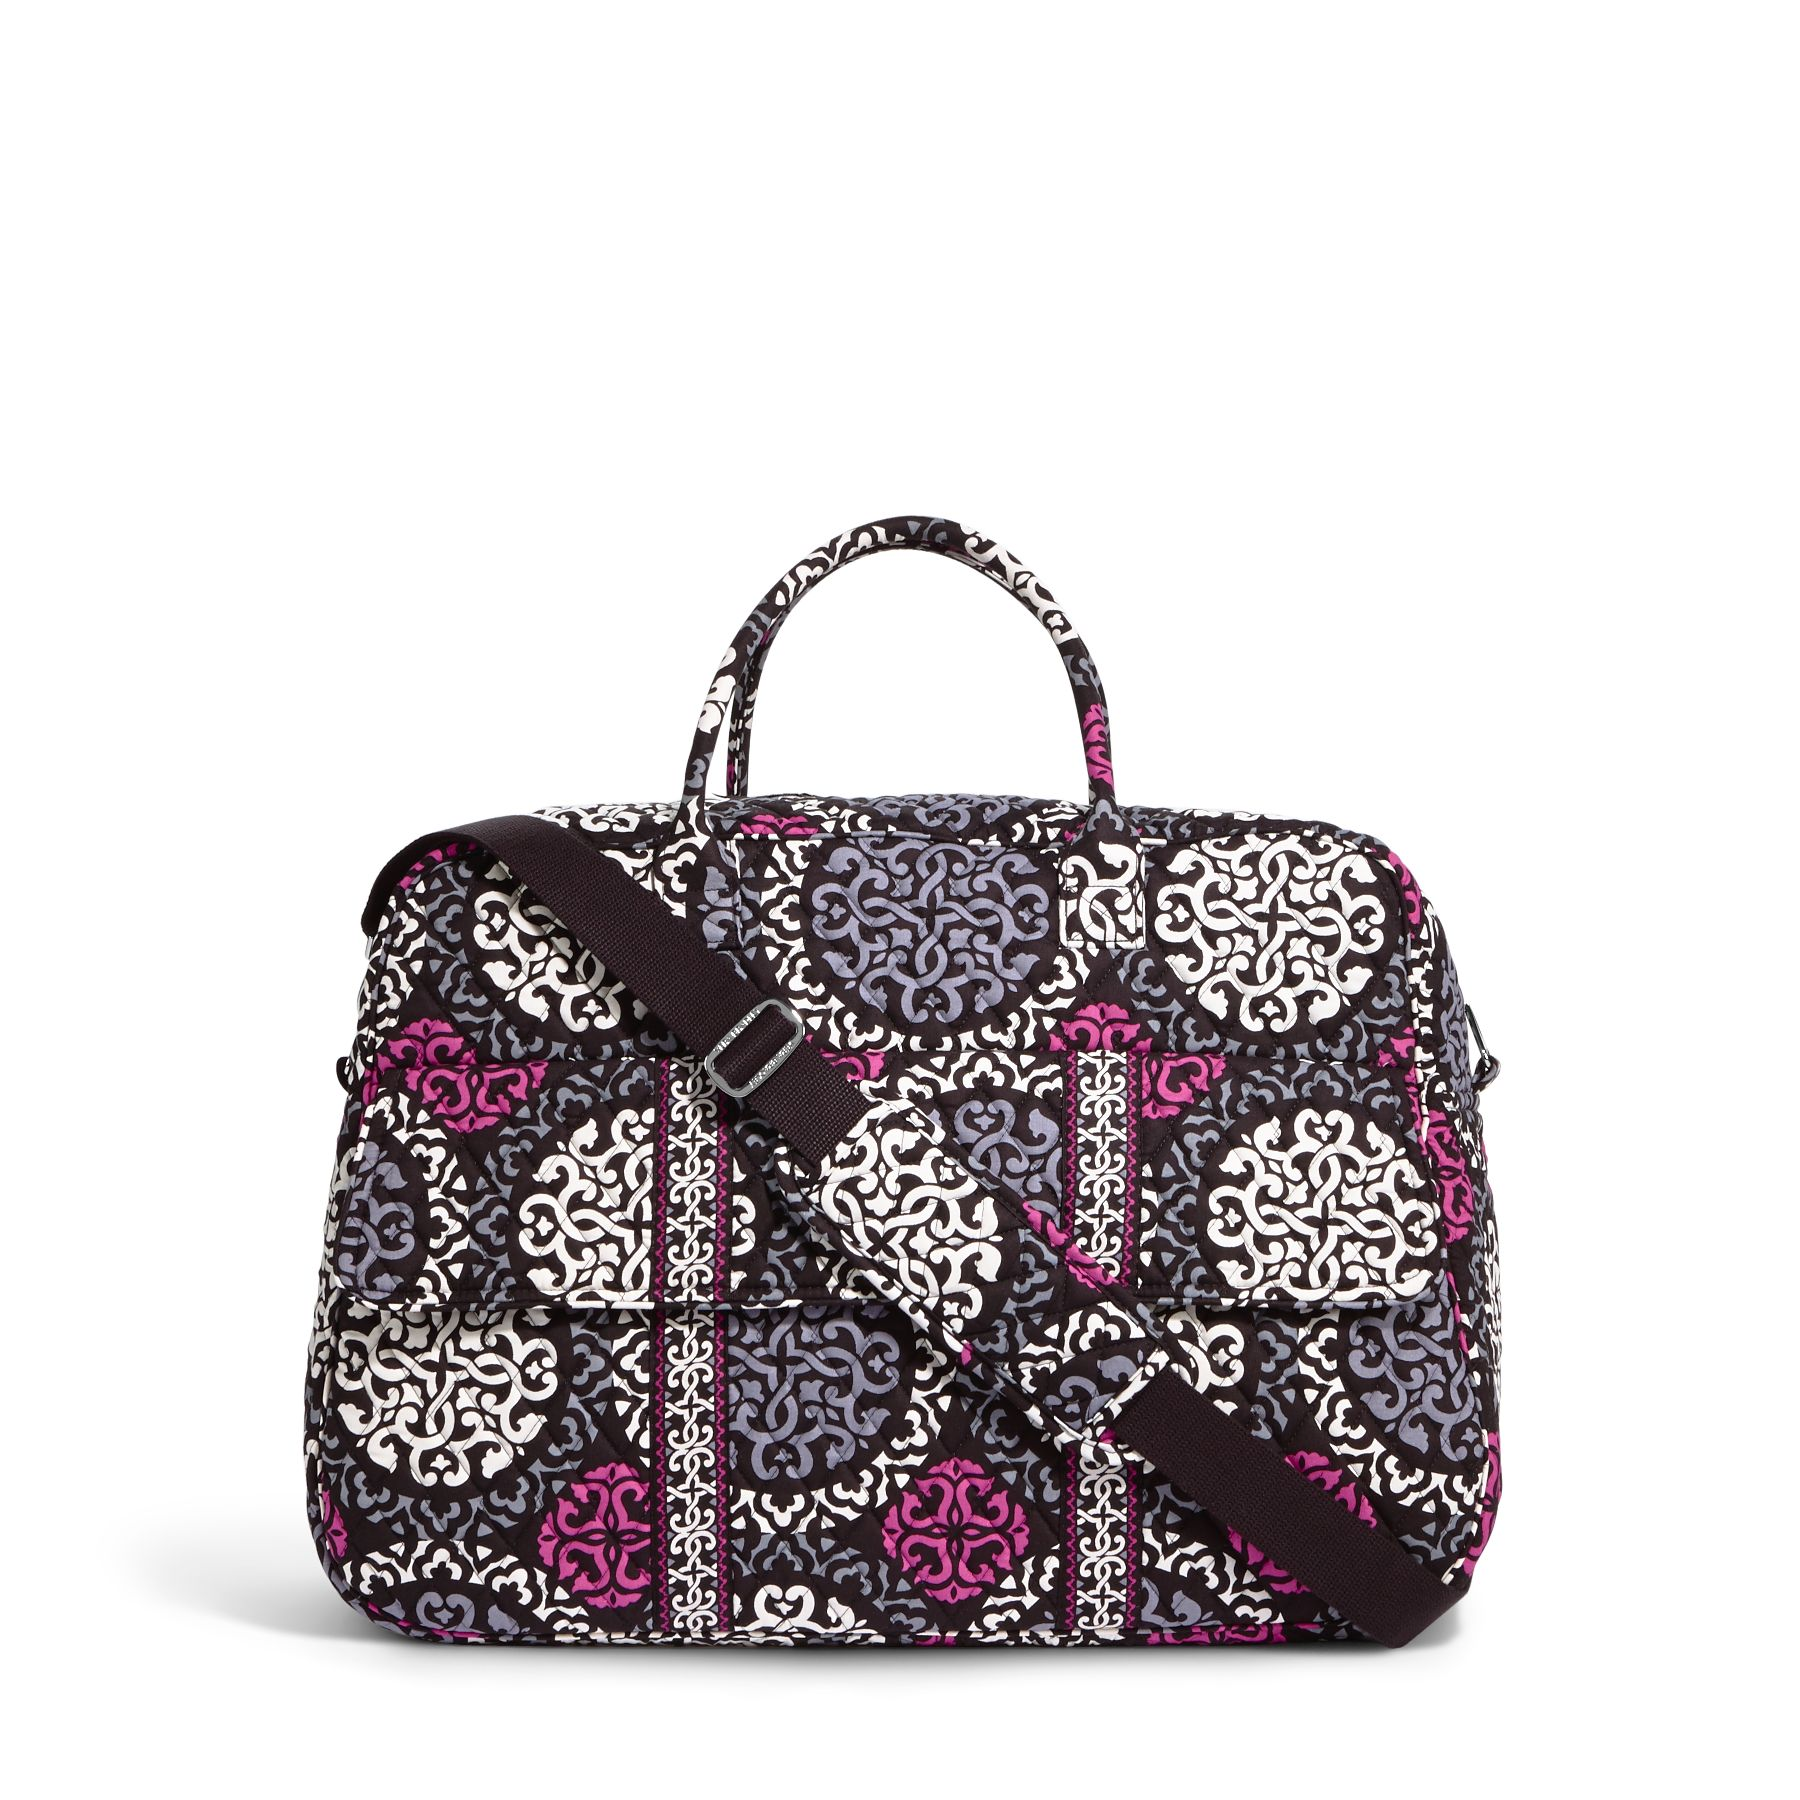 Vera Bradley Grand Traveler Travel Bag EBay